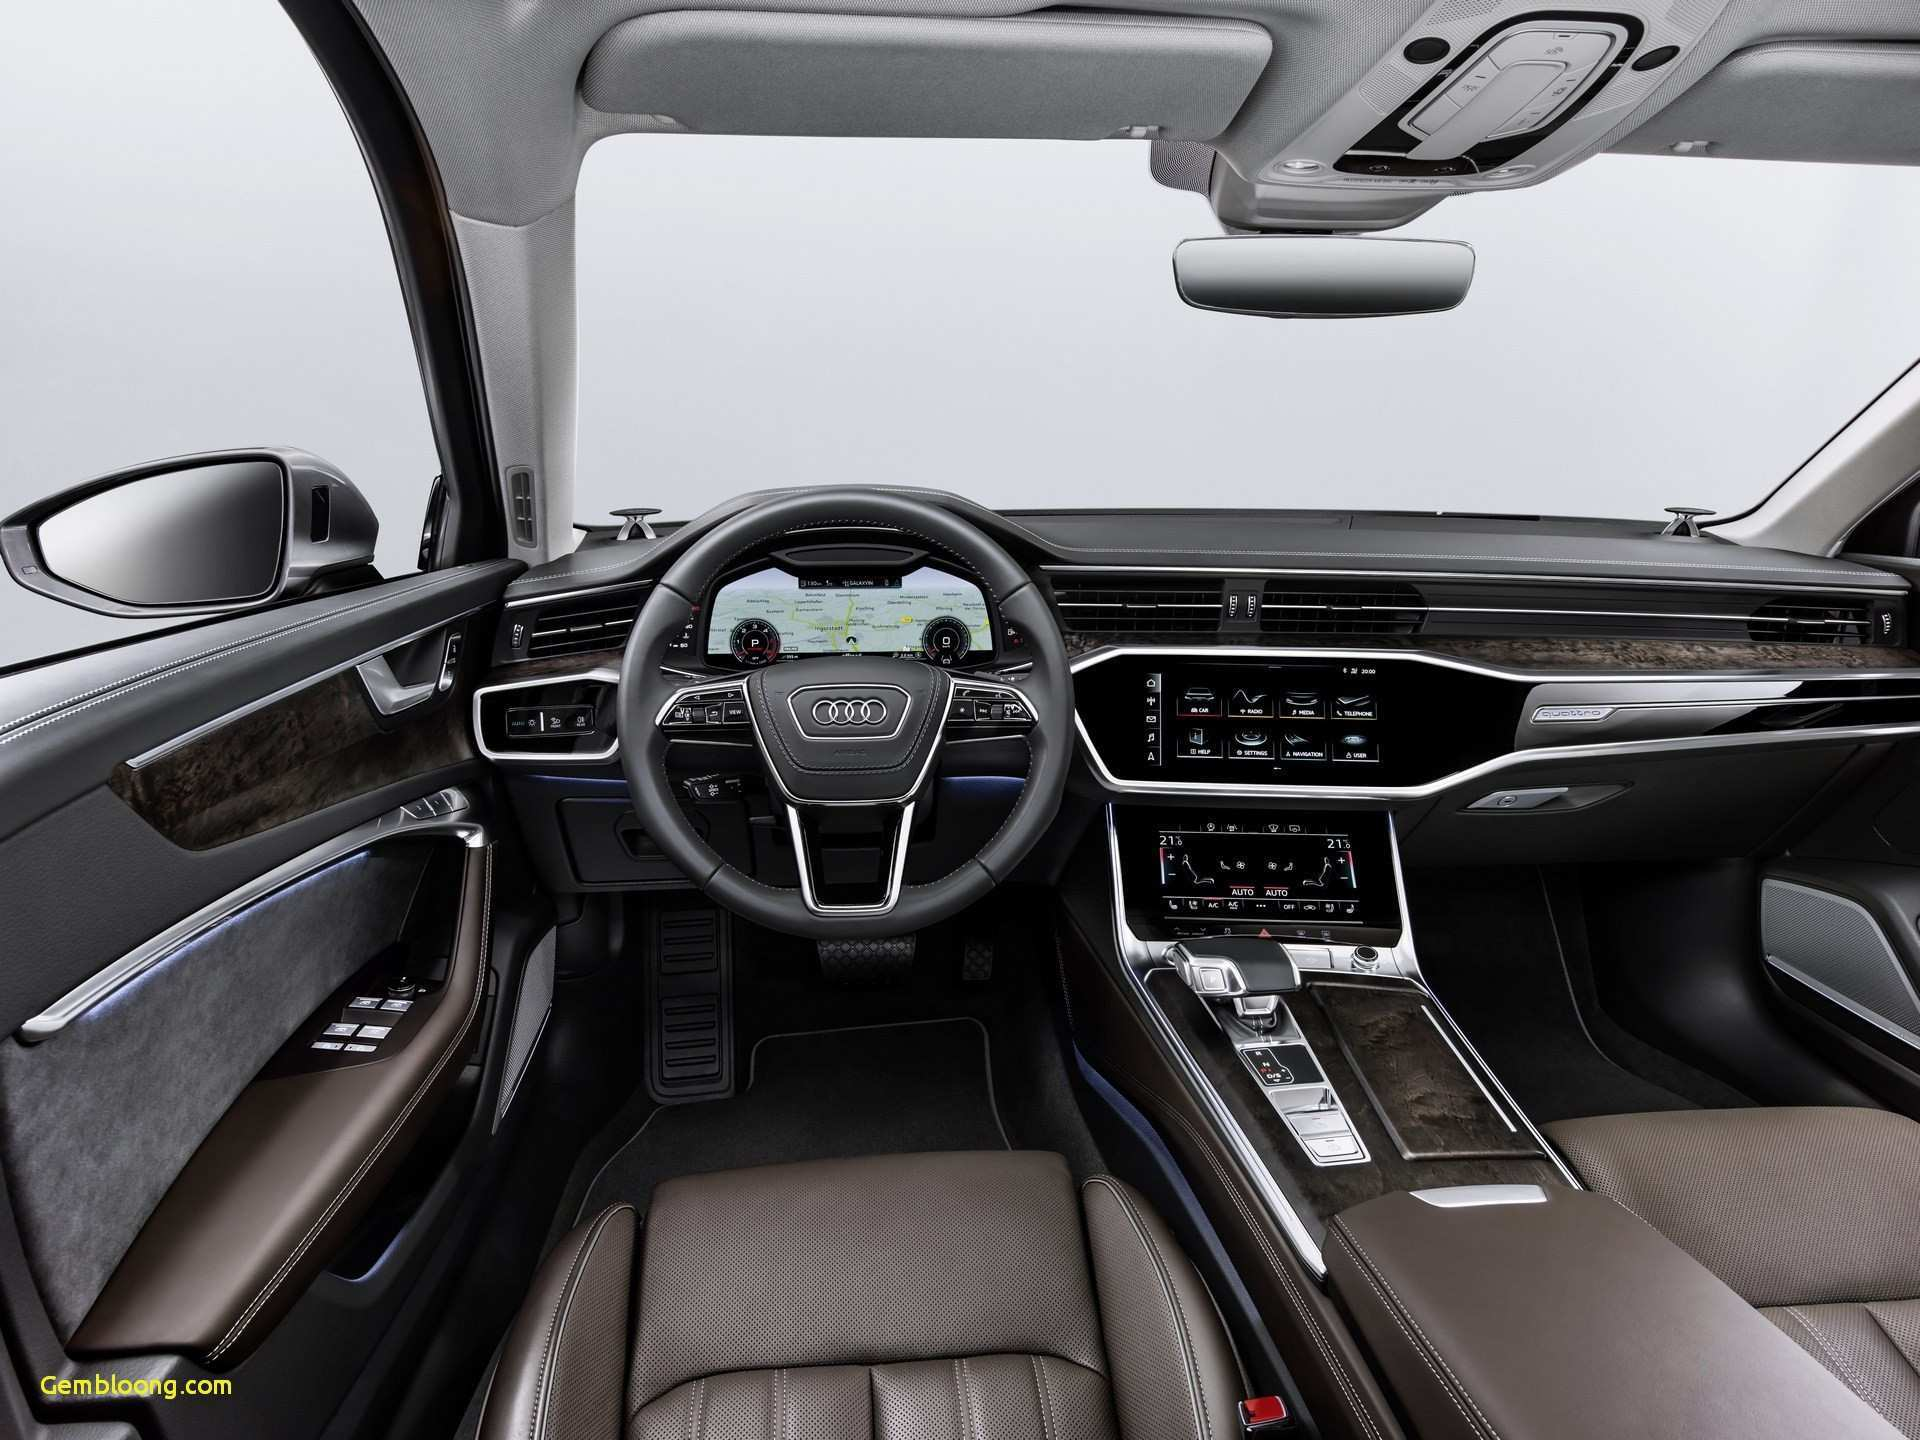 53 Best Review 2020 Chevrolet Impala Performance for 2020 Chevrolet Impala